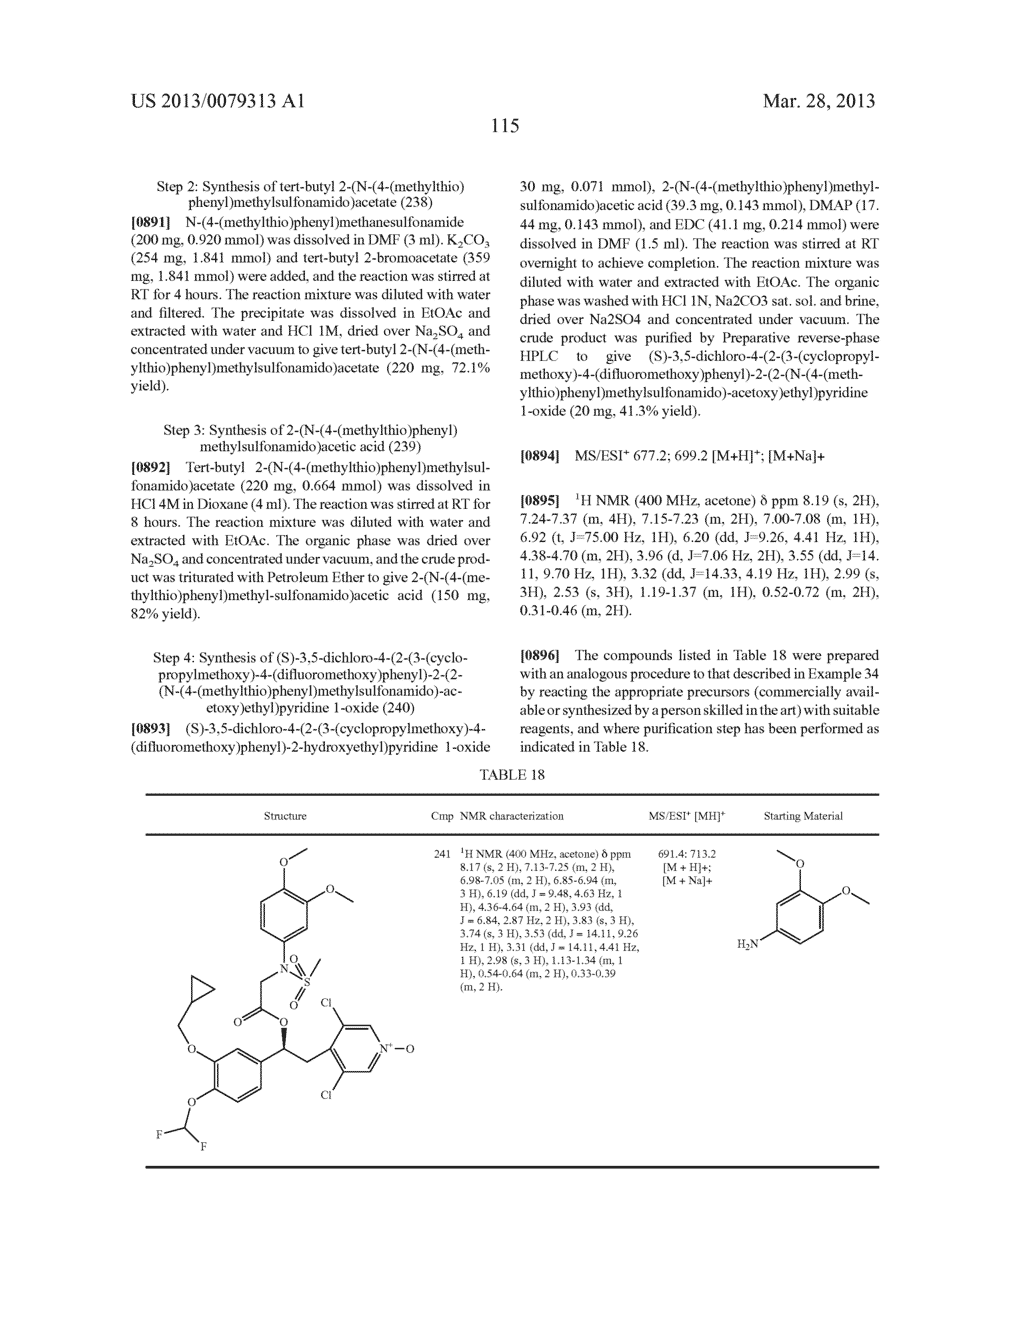 DERIVATIVES OF 1-PHENYL-2-PYRIDINYL ALKYL ALCOHOLS AS PHOSPHODIESTERASE     INHIBITORS - diagram, schematic, and image 116